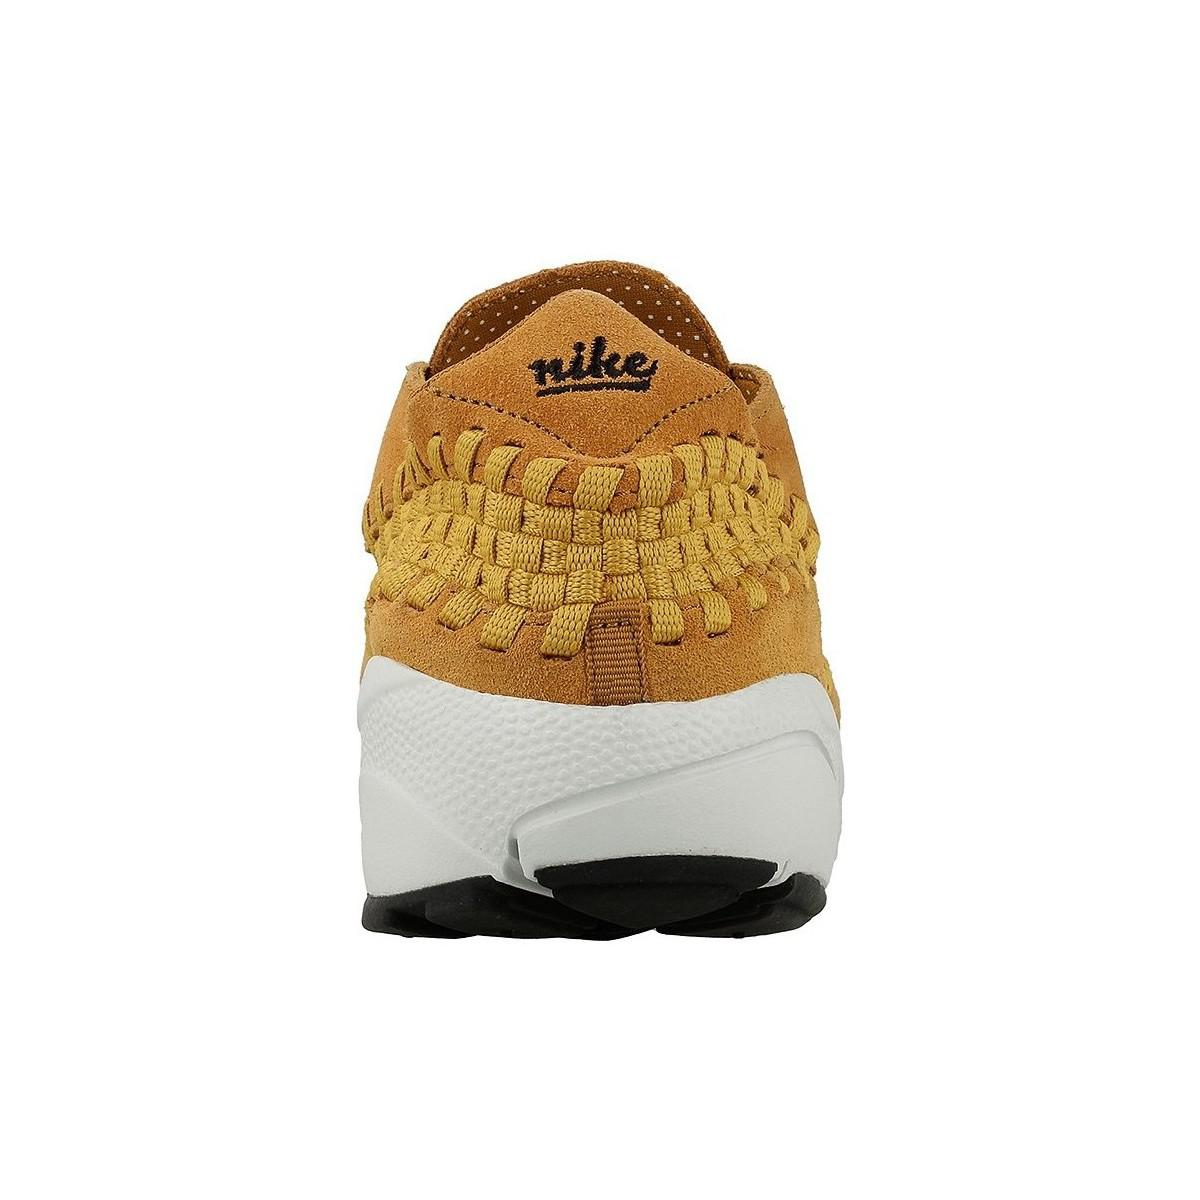 Nike Air Footscape Woven Nm Men's Shoes (trainers) In Beige in Natural for Men